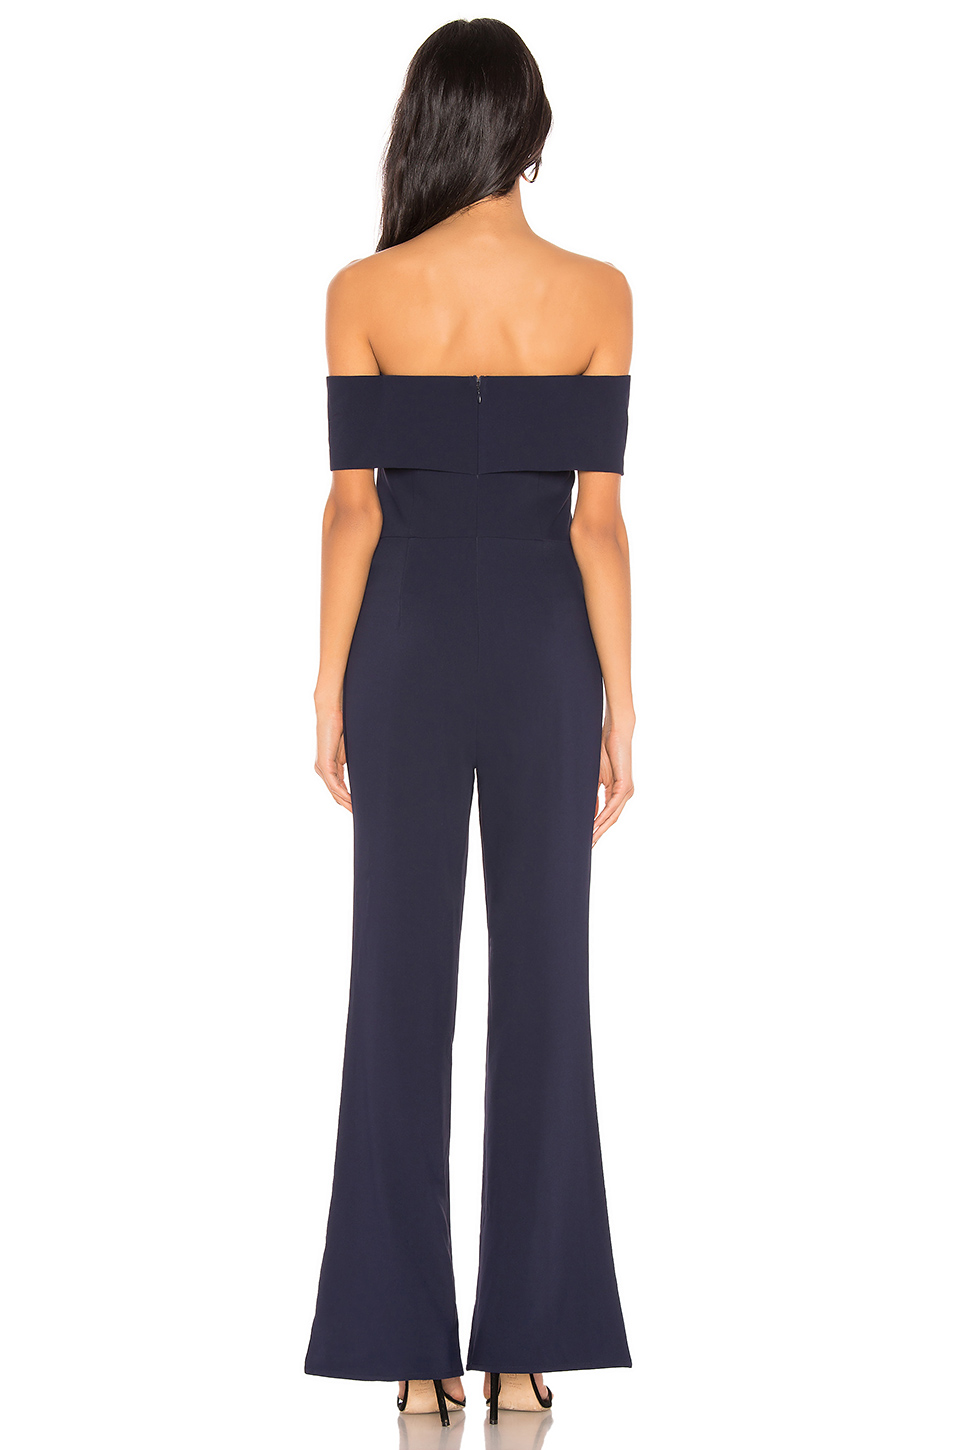 1df121bb837 Buy Original by the way. Aubrey Off Shoulder Jumpsuit at Indonesia ...